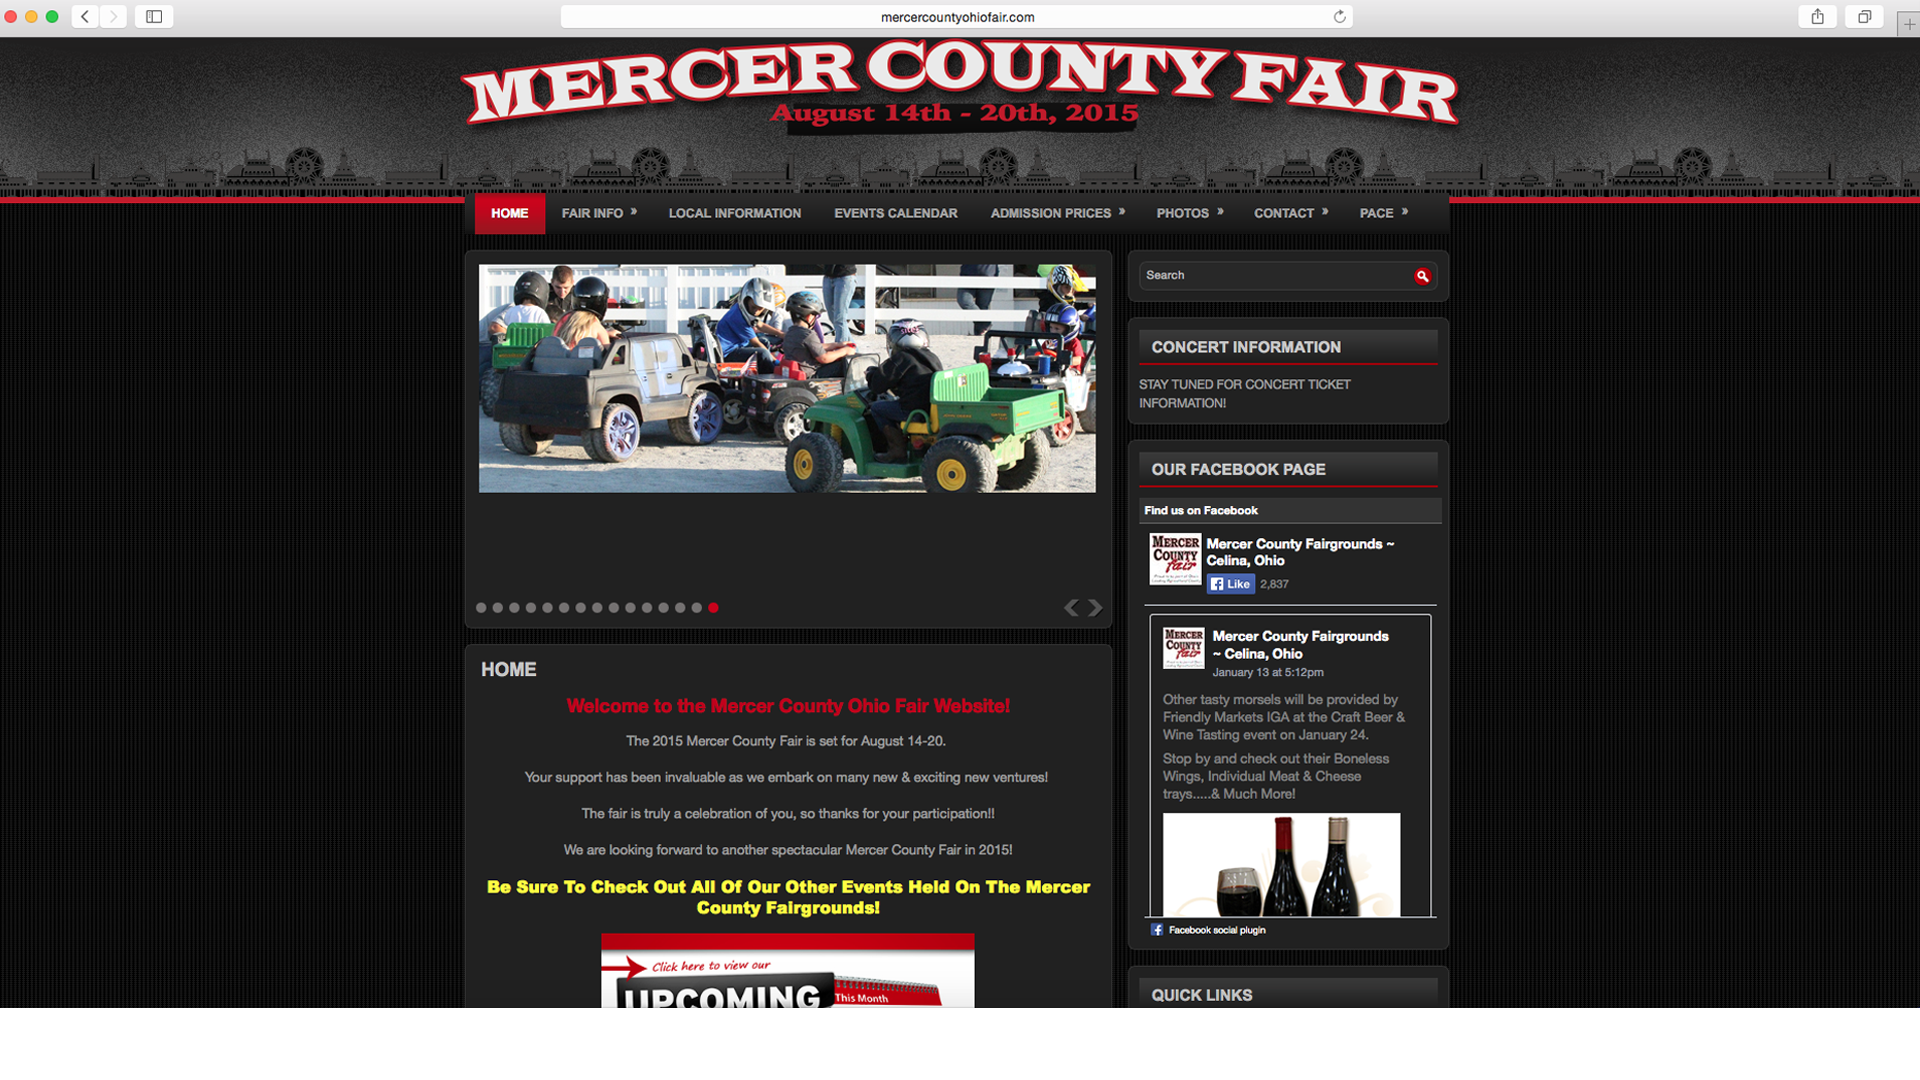 Mercer County Fair